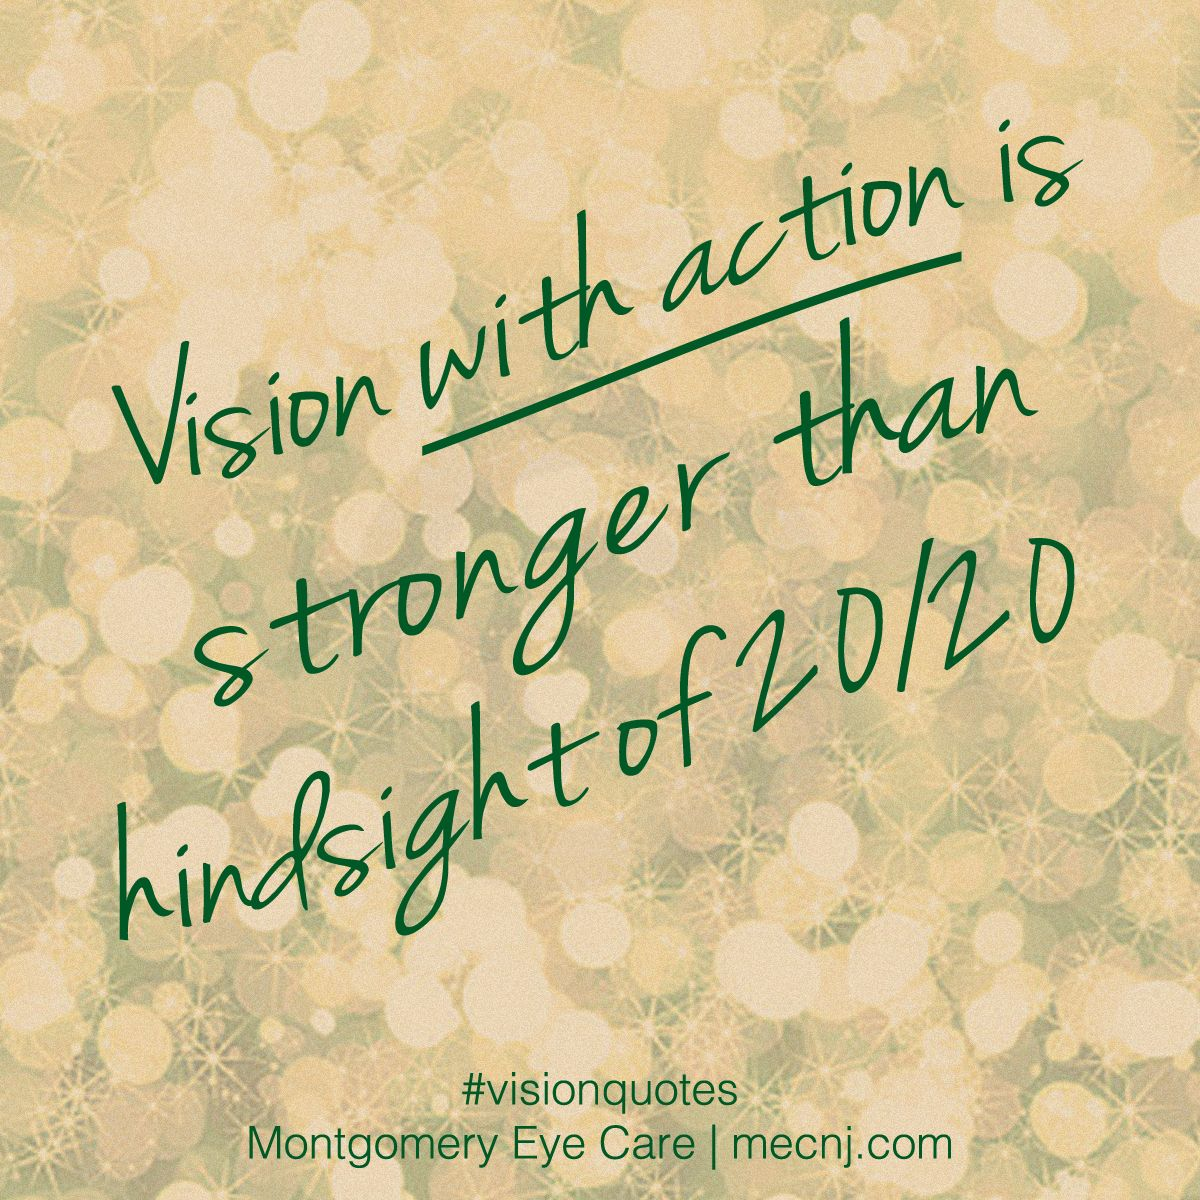 Vision with action is stronger than hindsight of 20/20